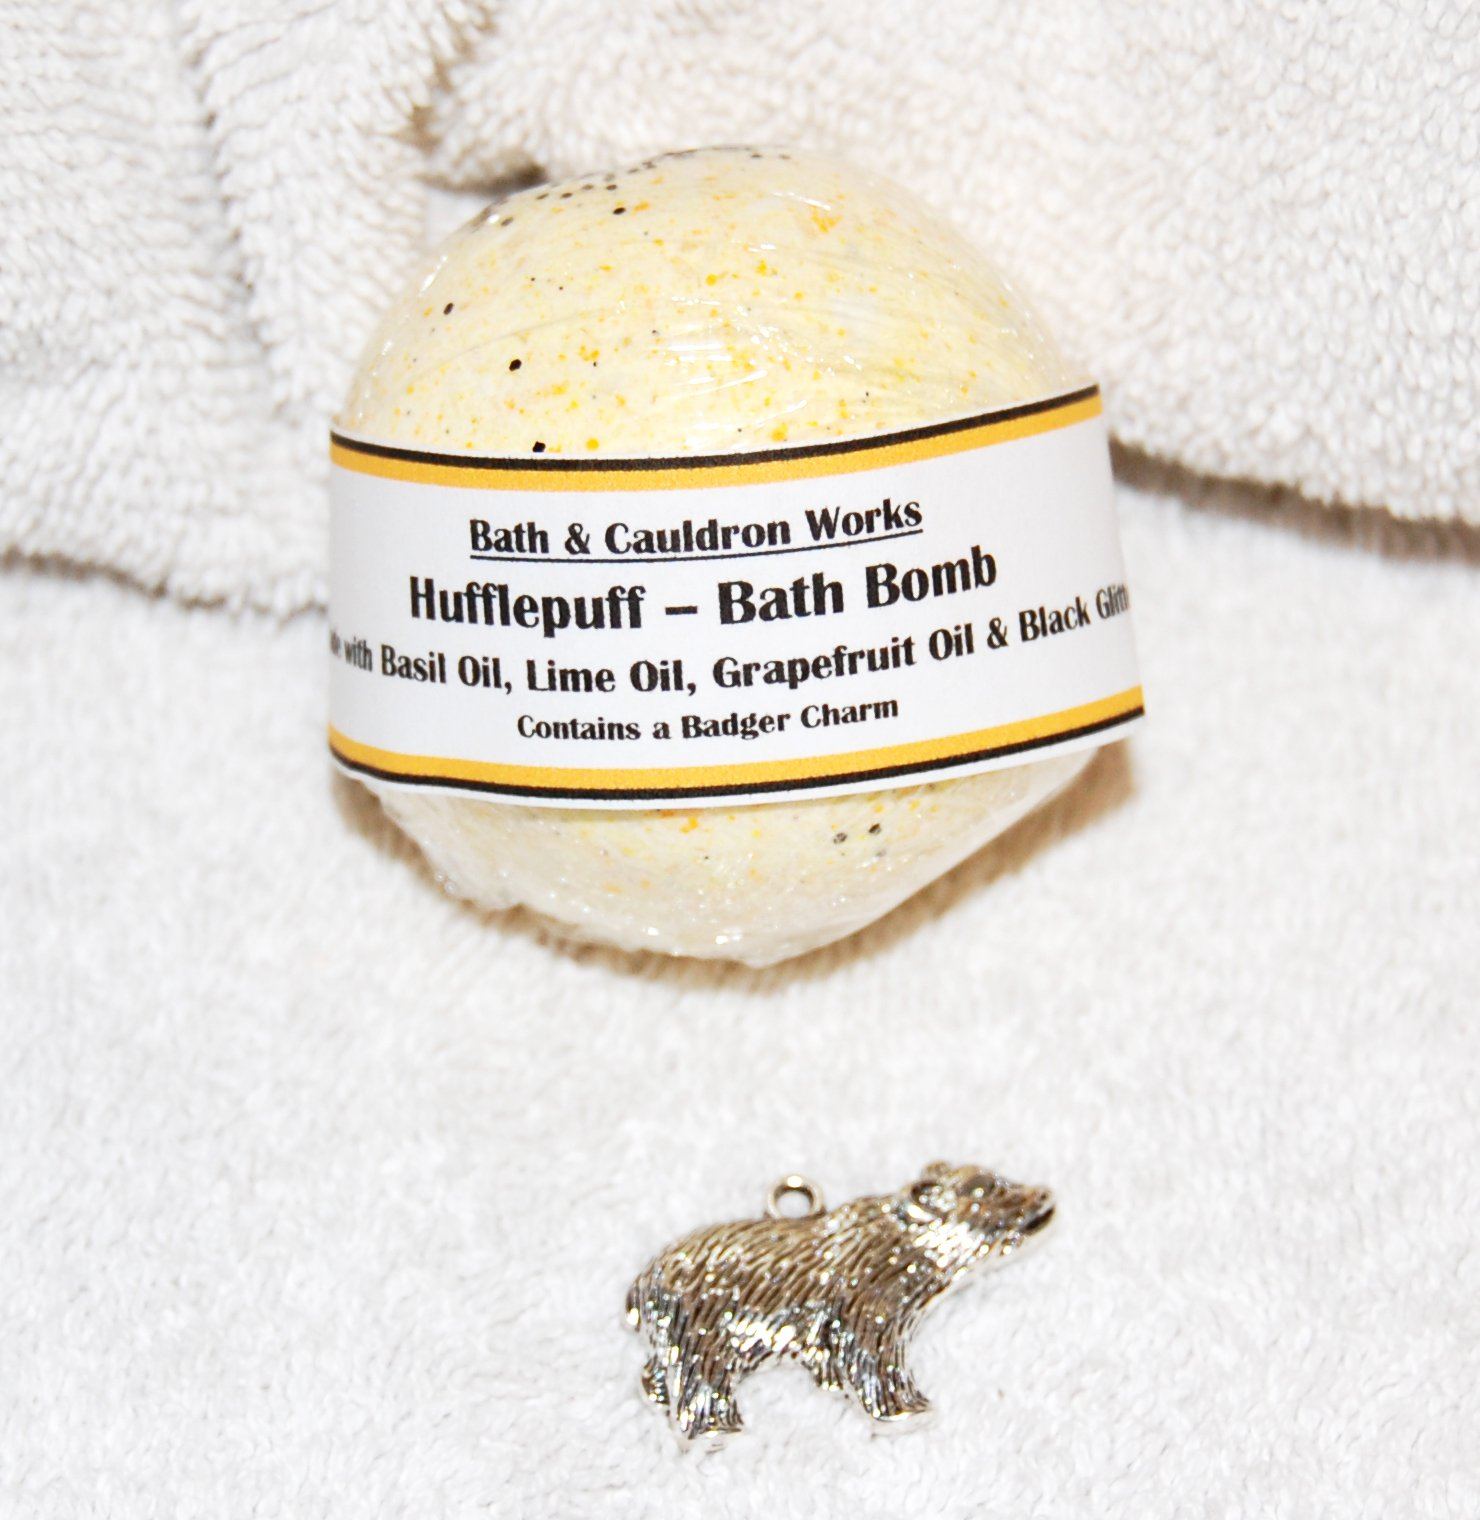 Harry Potter Hogwarts Houses Hufflepuff Bath Bomb with Badger Charm by Andromeda House